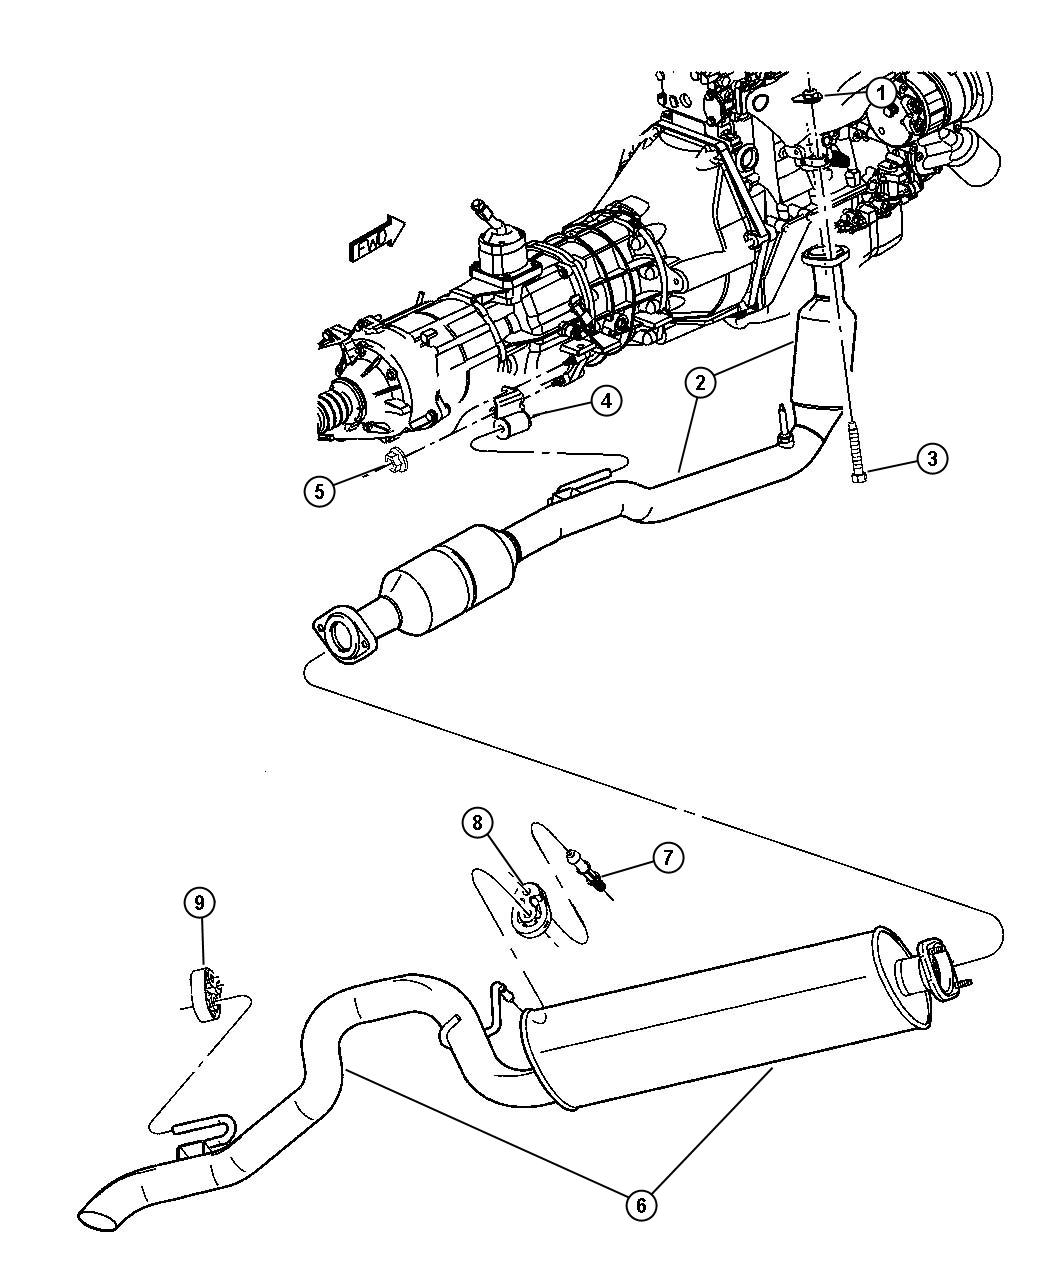 2002 Jeep Grand Cherokee Engine Parts Diagram. Jeep. Auto